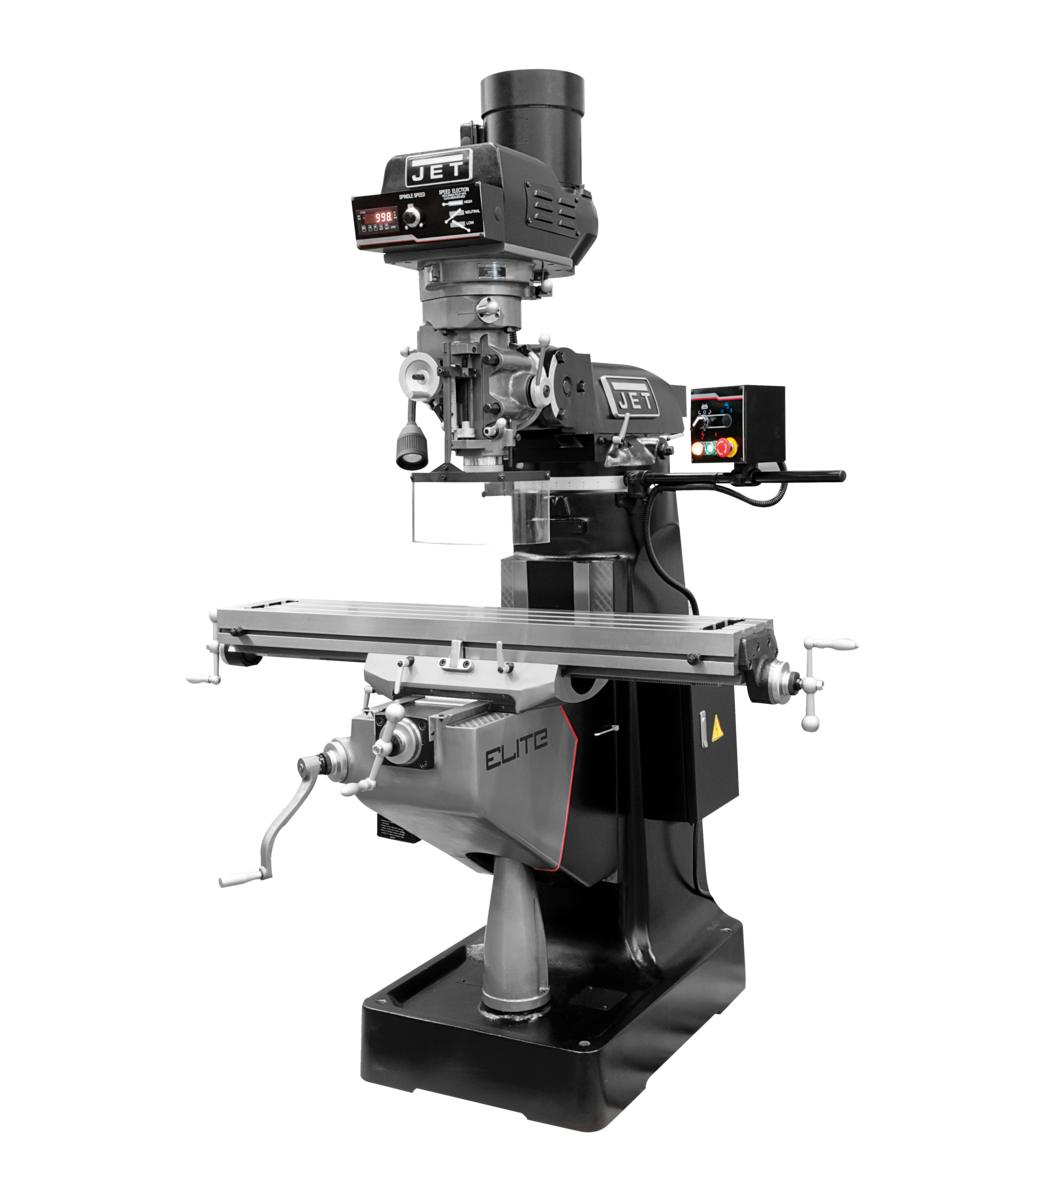 EVS-949 Mill with 2-Axis Newall DP700 DRO and Servo X-Axis Powerfeed